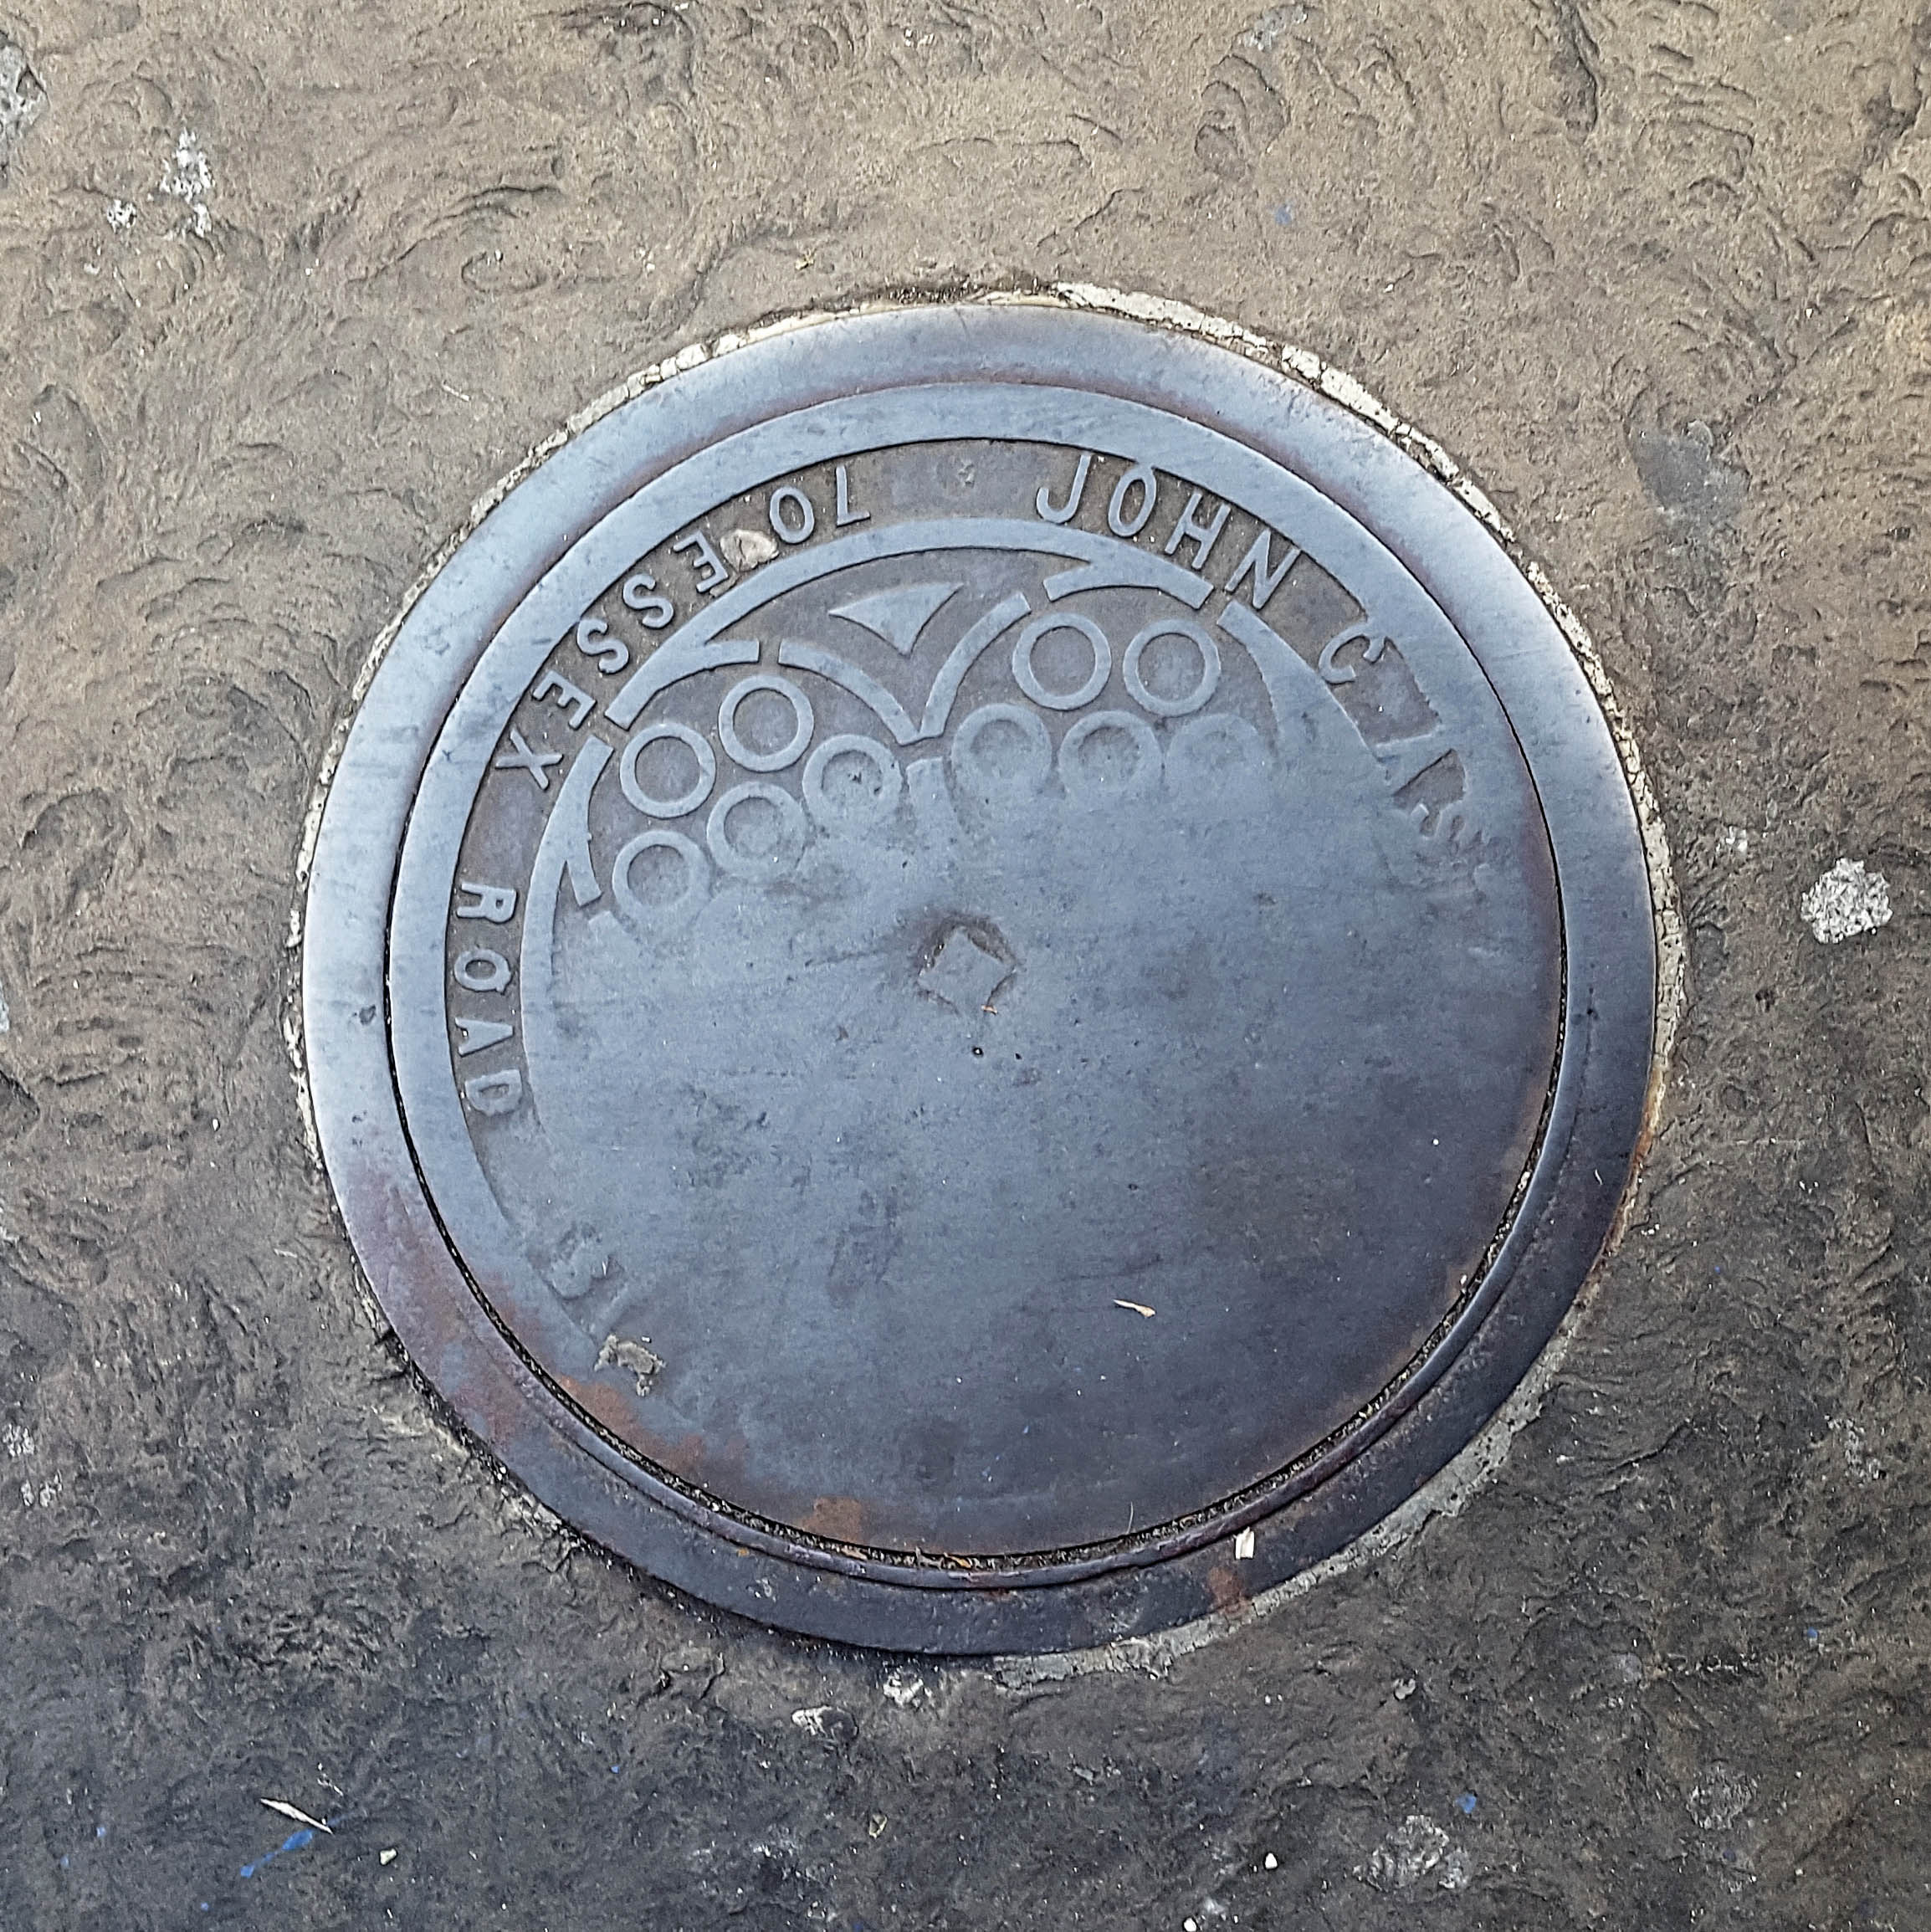 Manhole Cover, London - Cast iron with decorative circular patterns half worn away with age